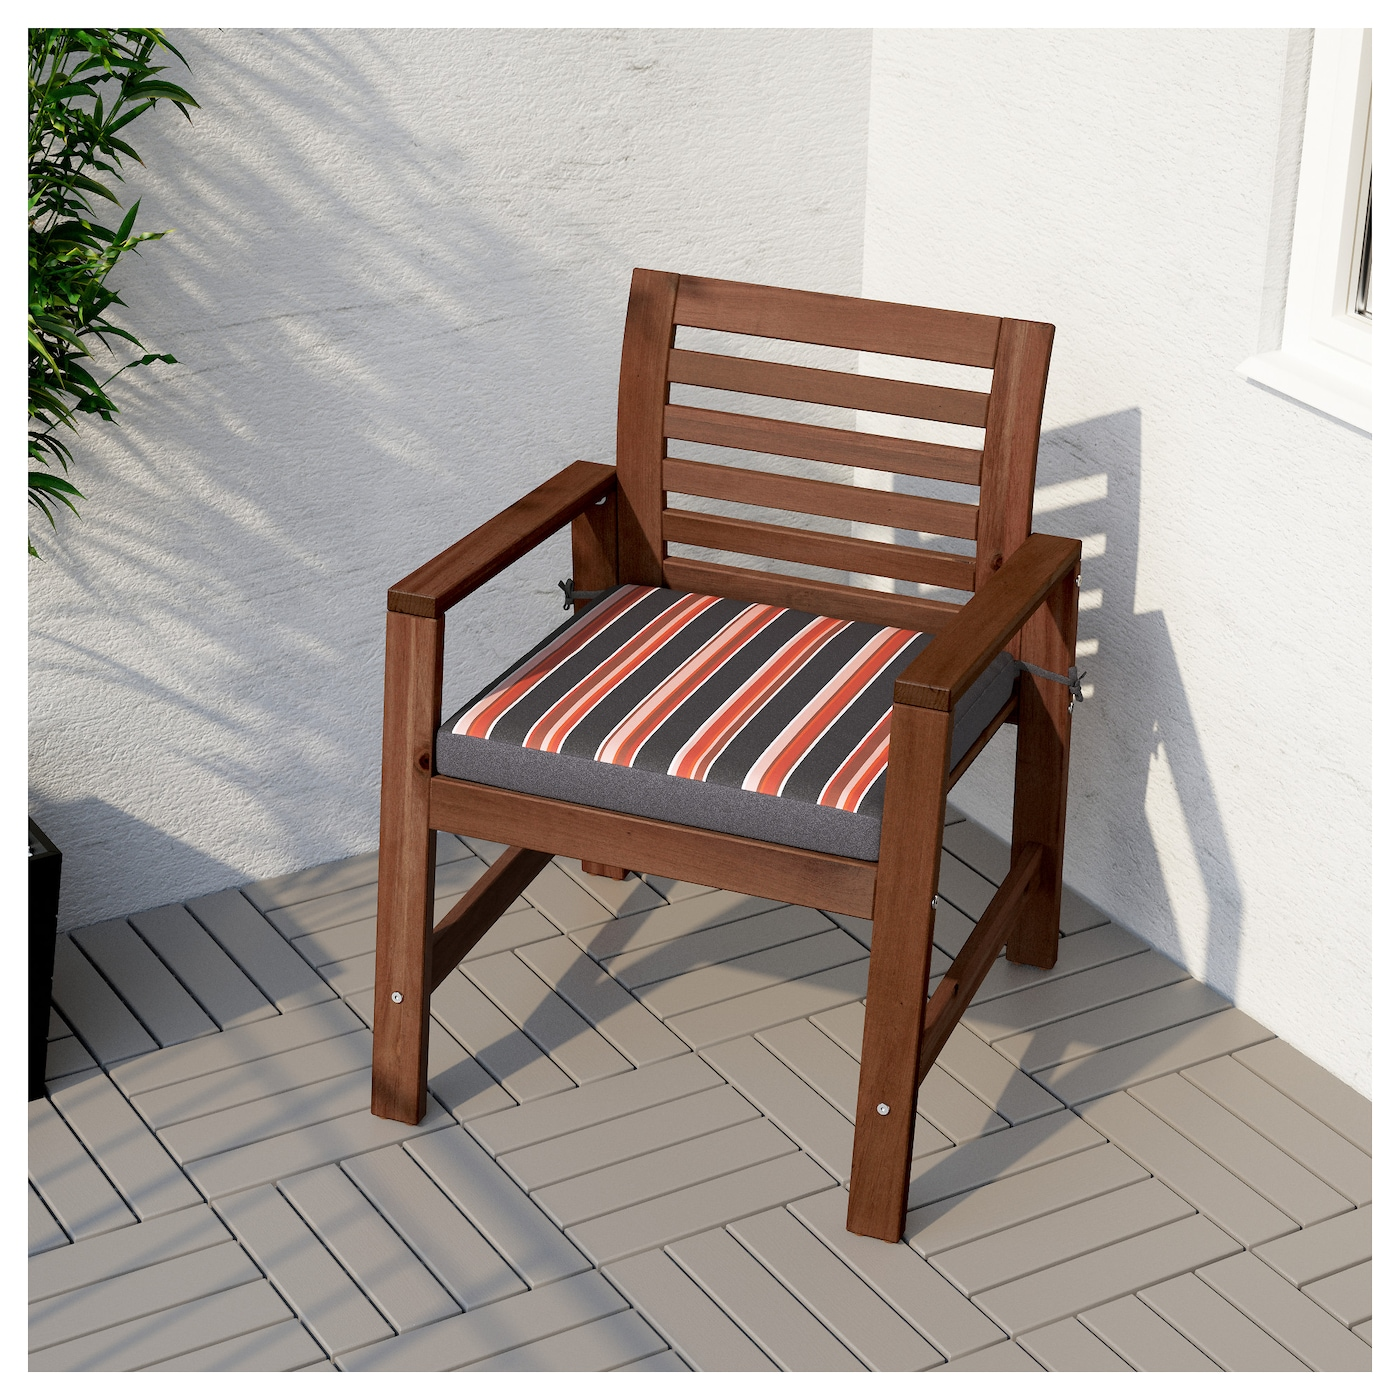 IKEA EKERÖN chair cushion, outdoor Ties keep the cushion firmly in place on the chair.